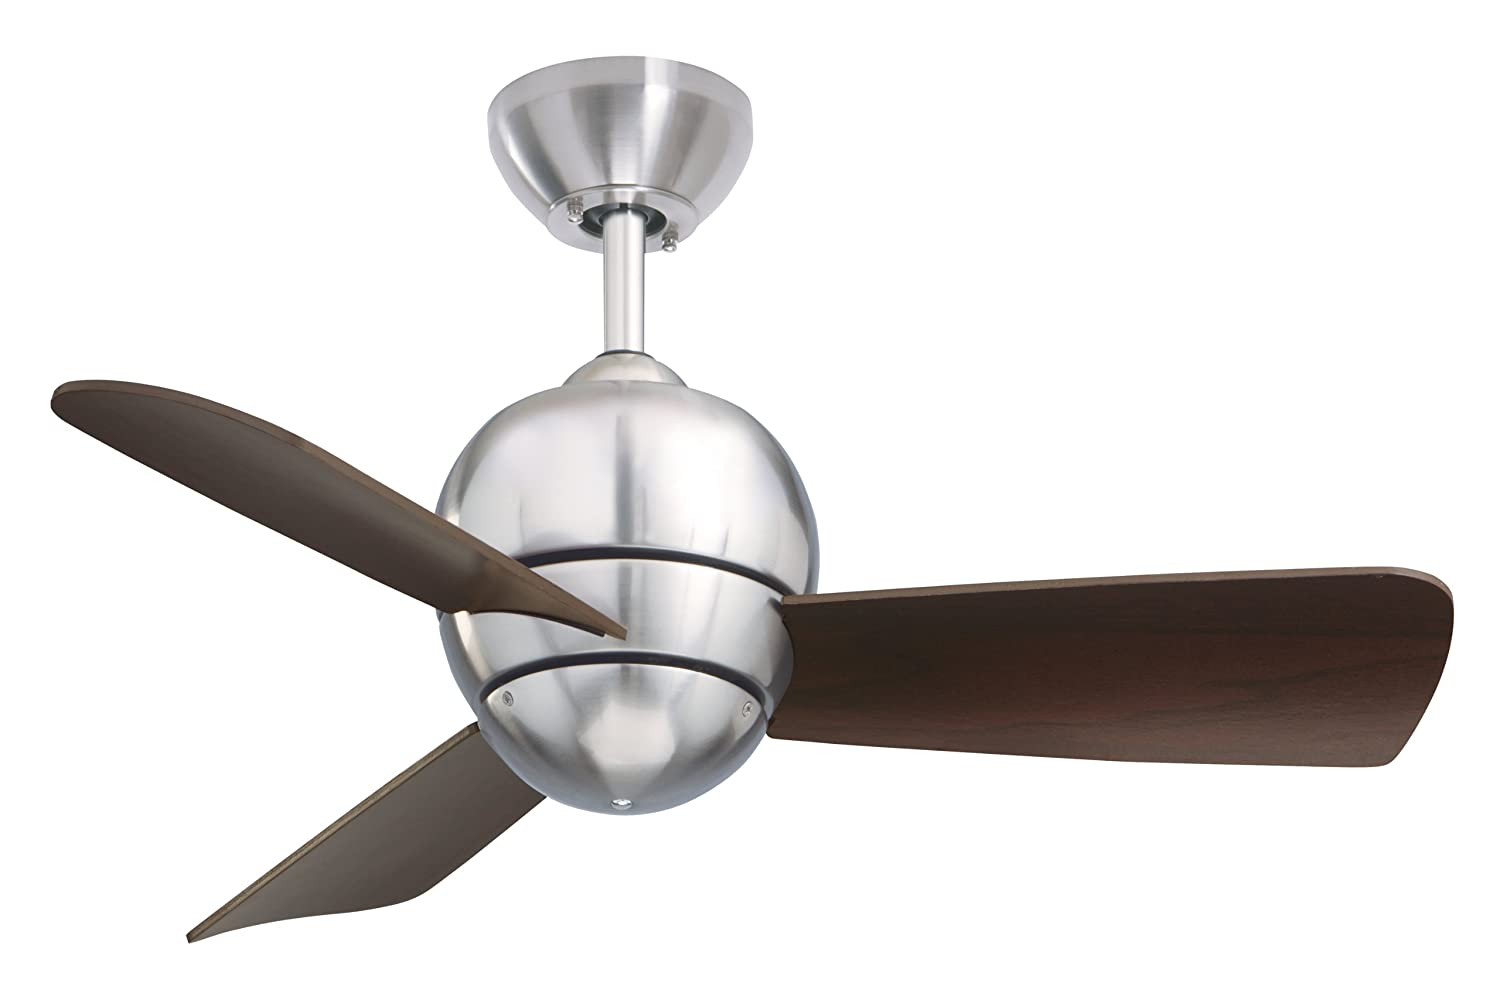 Emerson modern ceiling fans cf130bs tilo low profilehugger indoor emerson modern ceiling fans cf130bs tilo low profilehugger indoor ceiling fan with 30 inch blades light kit adaptable brushed steel finish amazon aloadofball Images